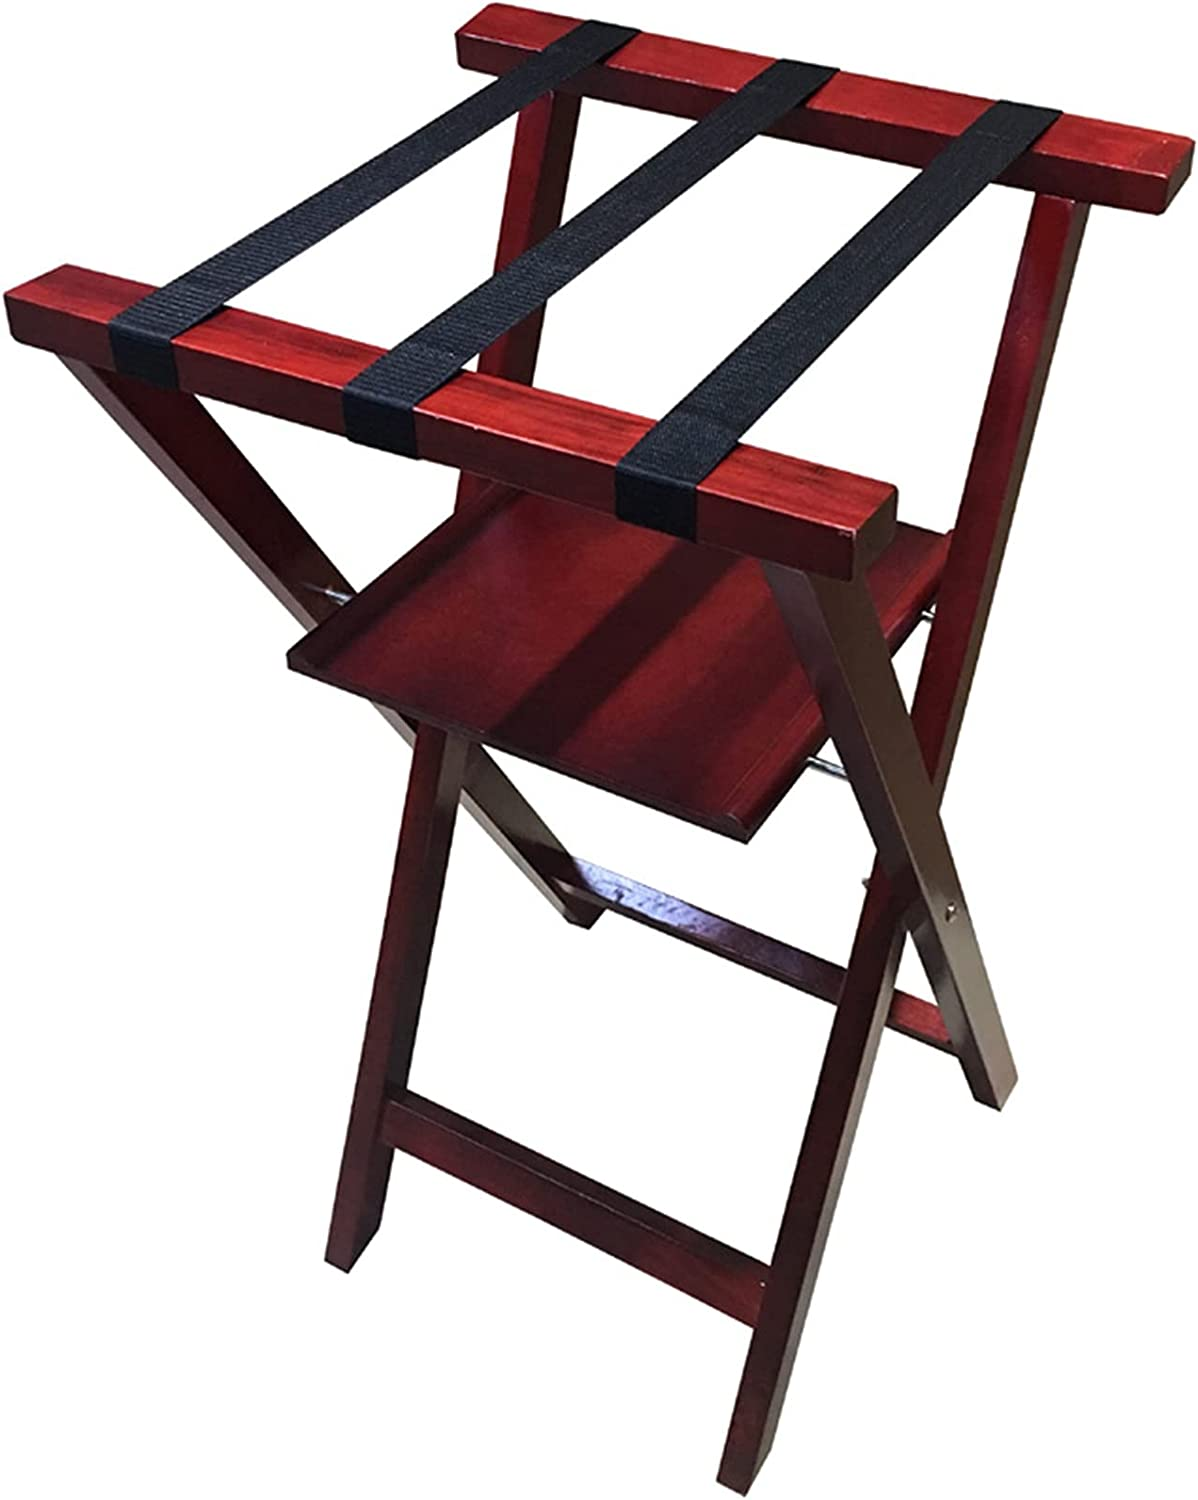 X-Shaped Luggage Rack Floor-Standing Max 83% OFF Solid Wood Double-Layer Selling and selling St